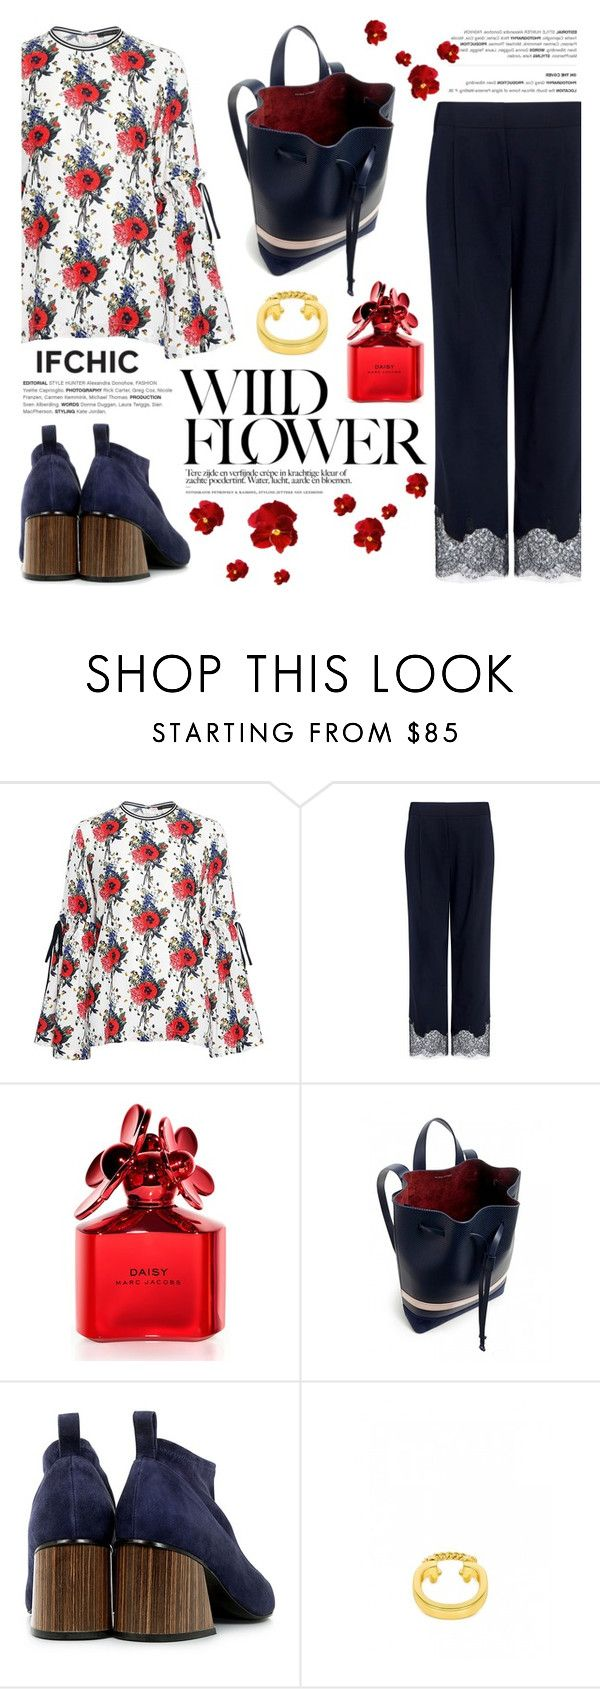 """""""Flower Power"""" by ifchic ❤ liked on Polyvore featuring Mother of Pearl, TIBI, Marc Jacobs, Eugenia Kim and Giles & Brother"""